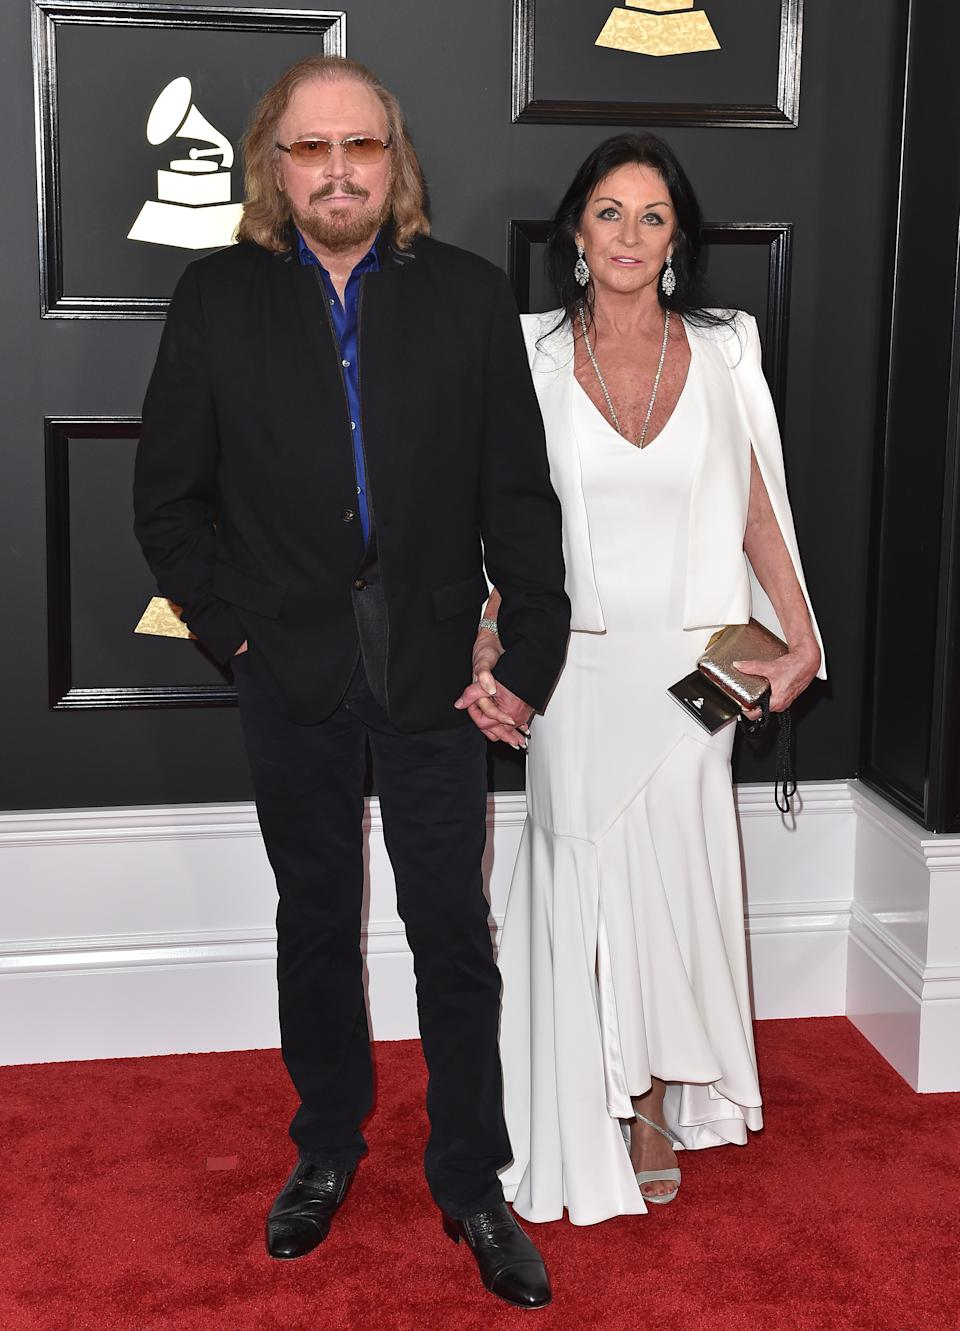 LOS ANGELES, CA - FEBRUARY 12: Singer Barry Gibb and Linda Gray attend the 59th GRAMMY Awards at STAPLES Center on February 12, 2017 in Los Angeles, California. (Photo by Axelle/Bauer-Griffin/FilmMagic)